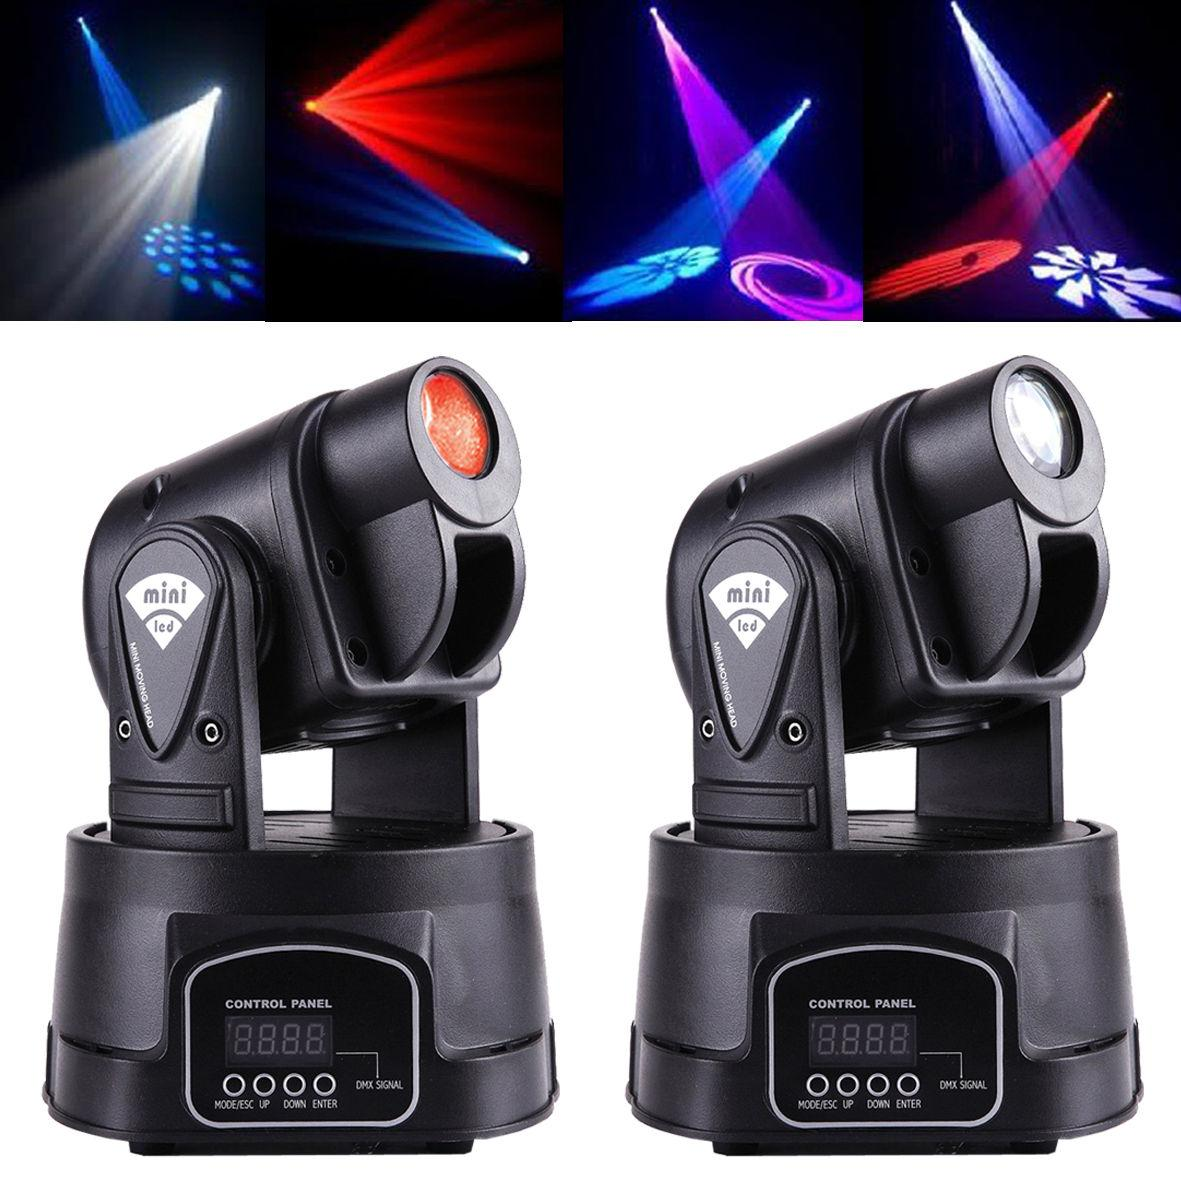 discount mini led moving head light spot rgb stage lighting party dj disco club 15w rgb multicolor change dmx controller spot wash light dhl from china - Spot Led Multicolore